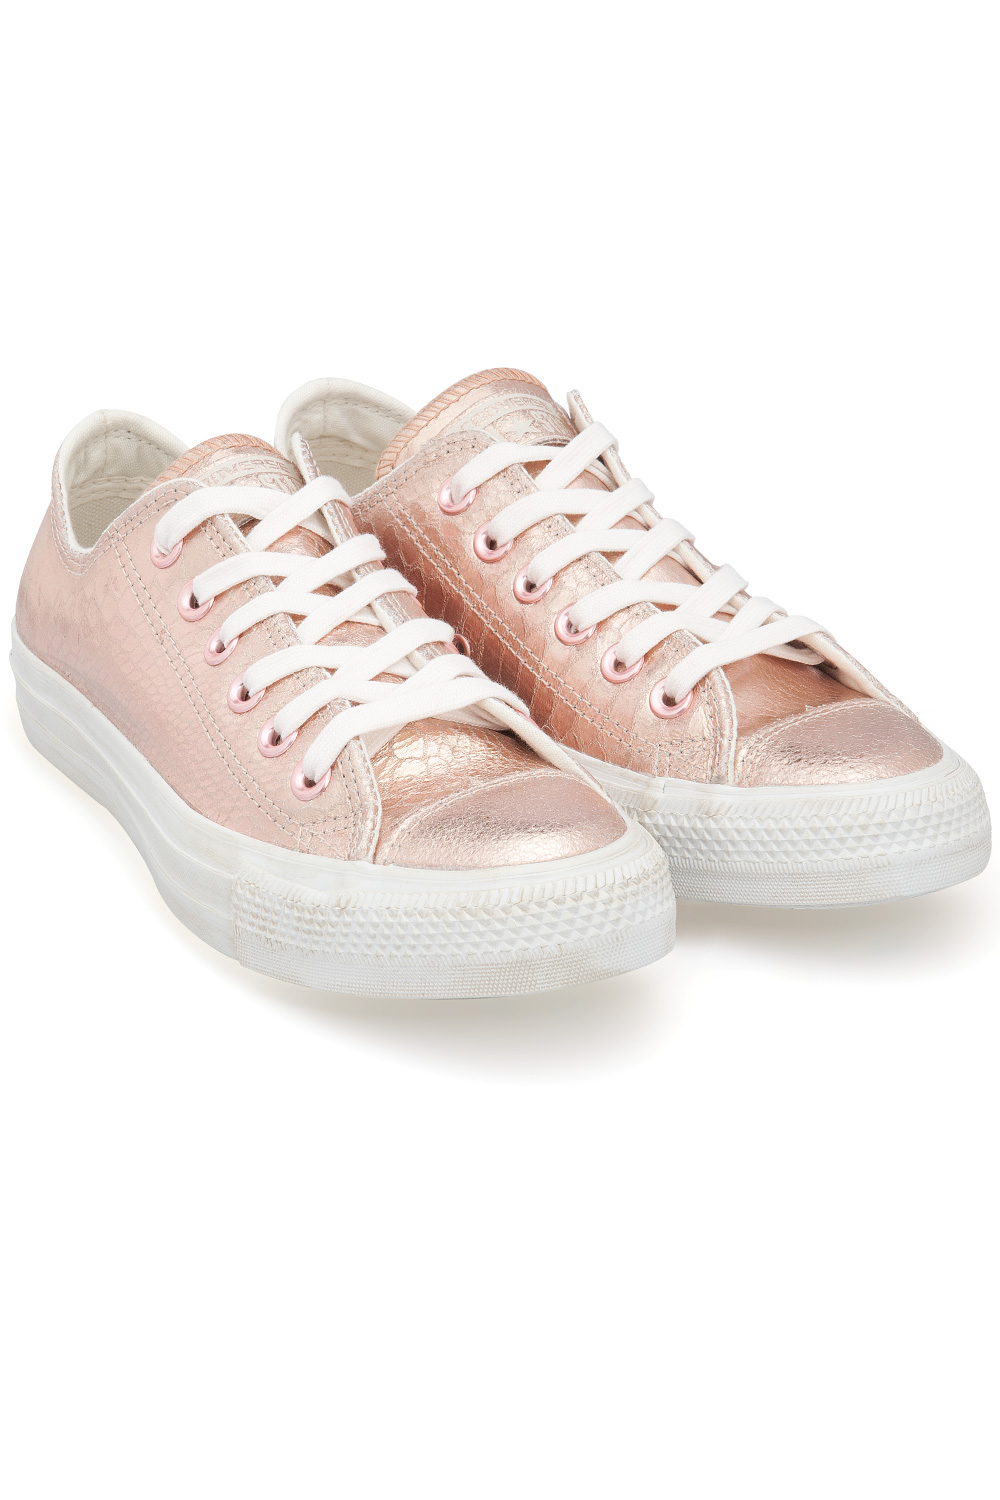 converse chuck taylor rose gold